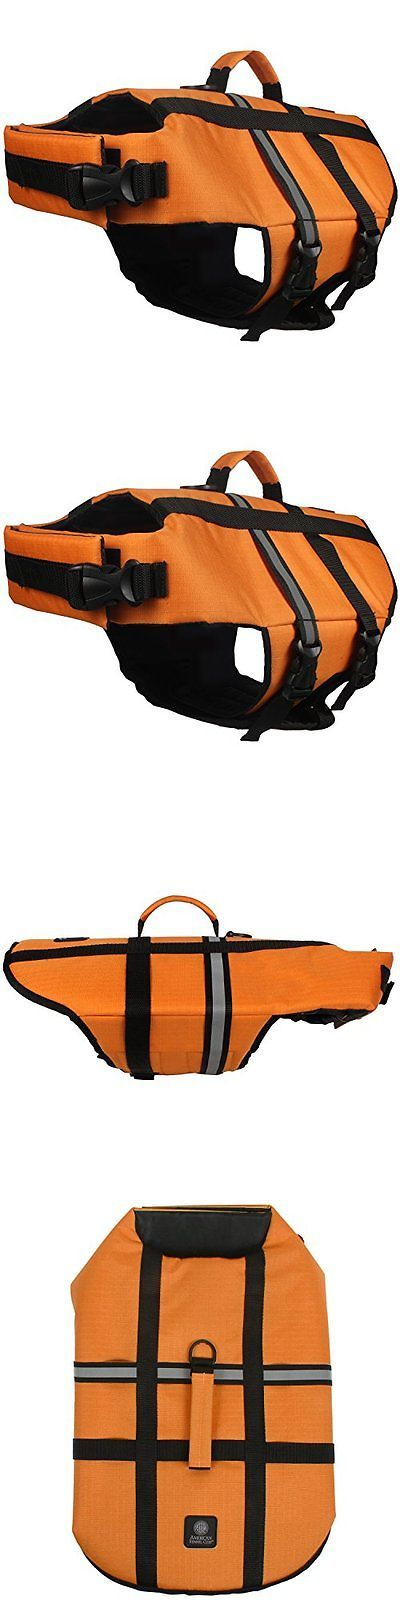 Safety Vests and Life Preservers 117427: American Kennel Club Pet Flotation Life Vest - Orange Xl BUY IT NOW ONLY: $47.04